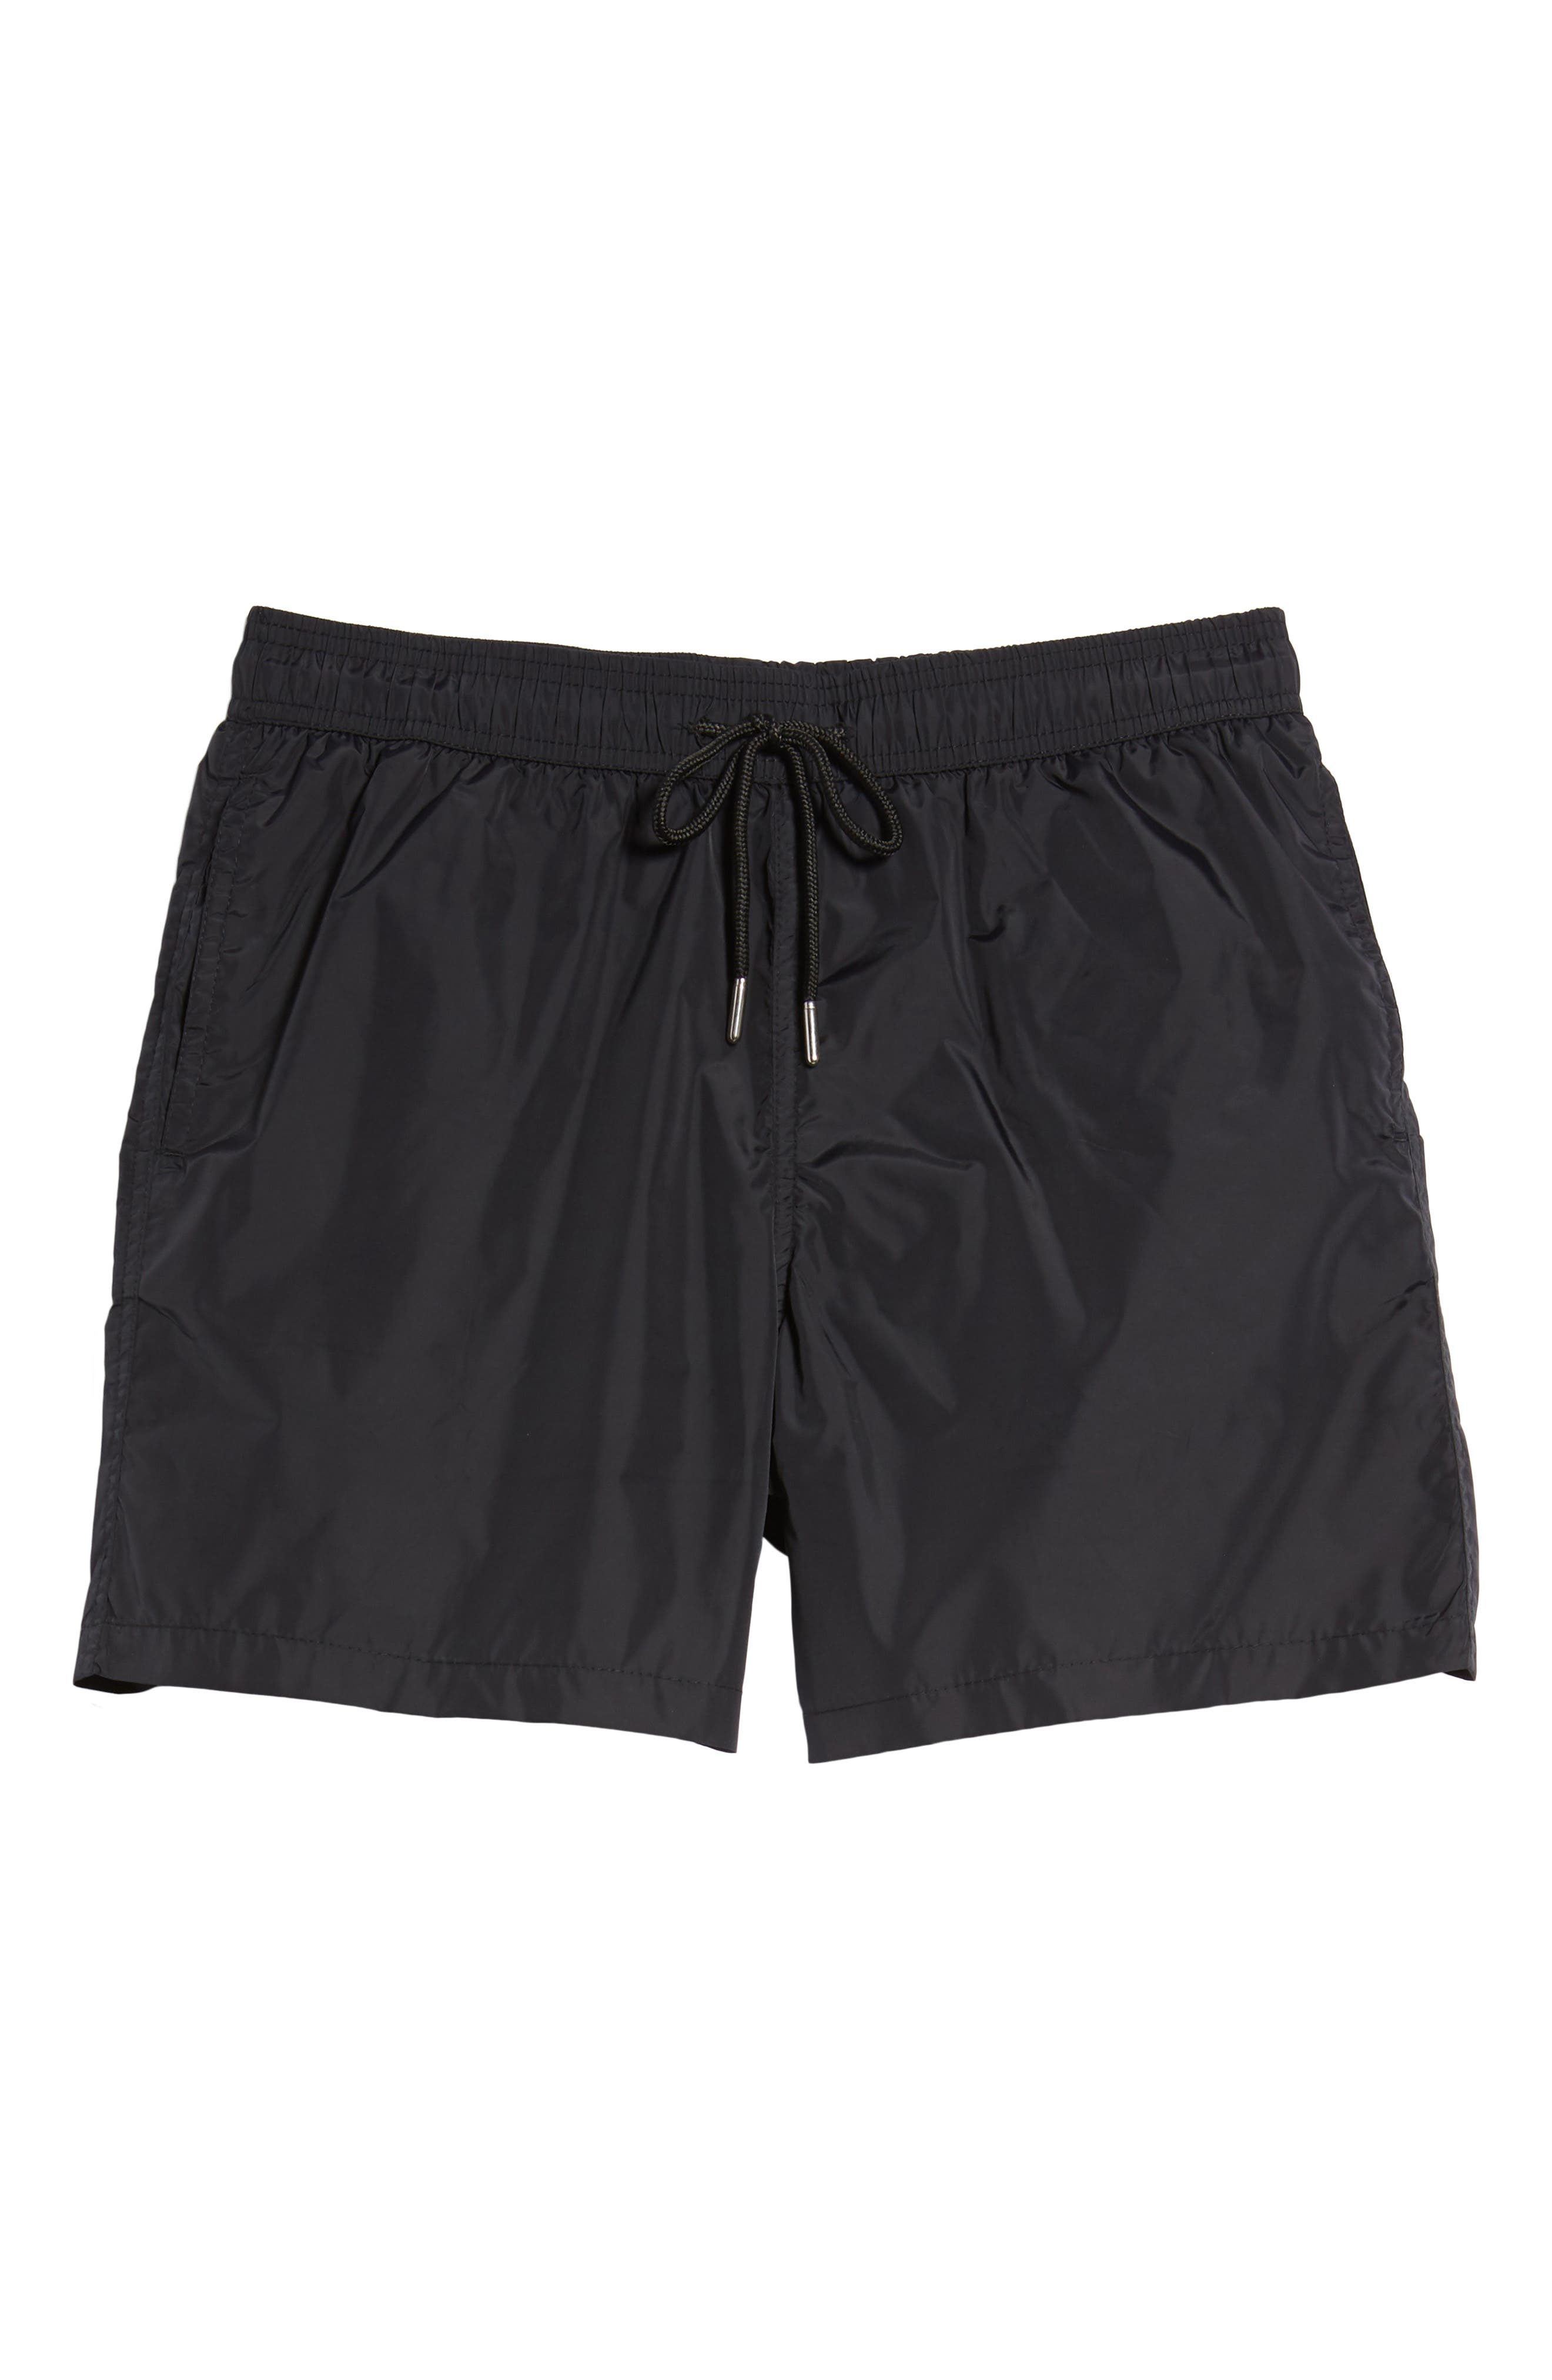 Swim Trunks,                             Alternate thumbnail 6, color,                             Black /Turquoise